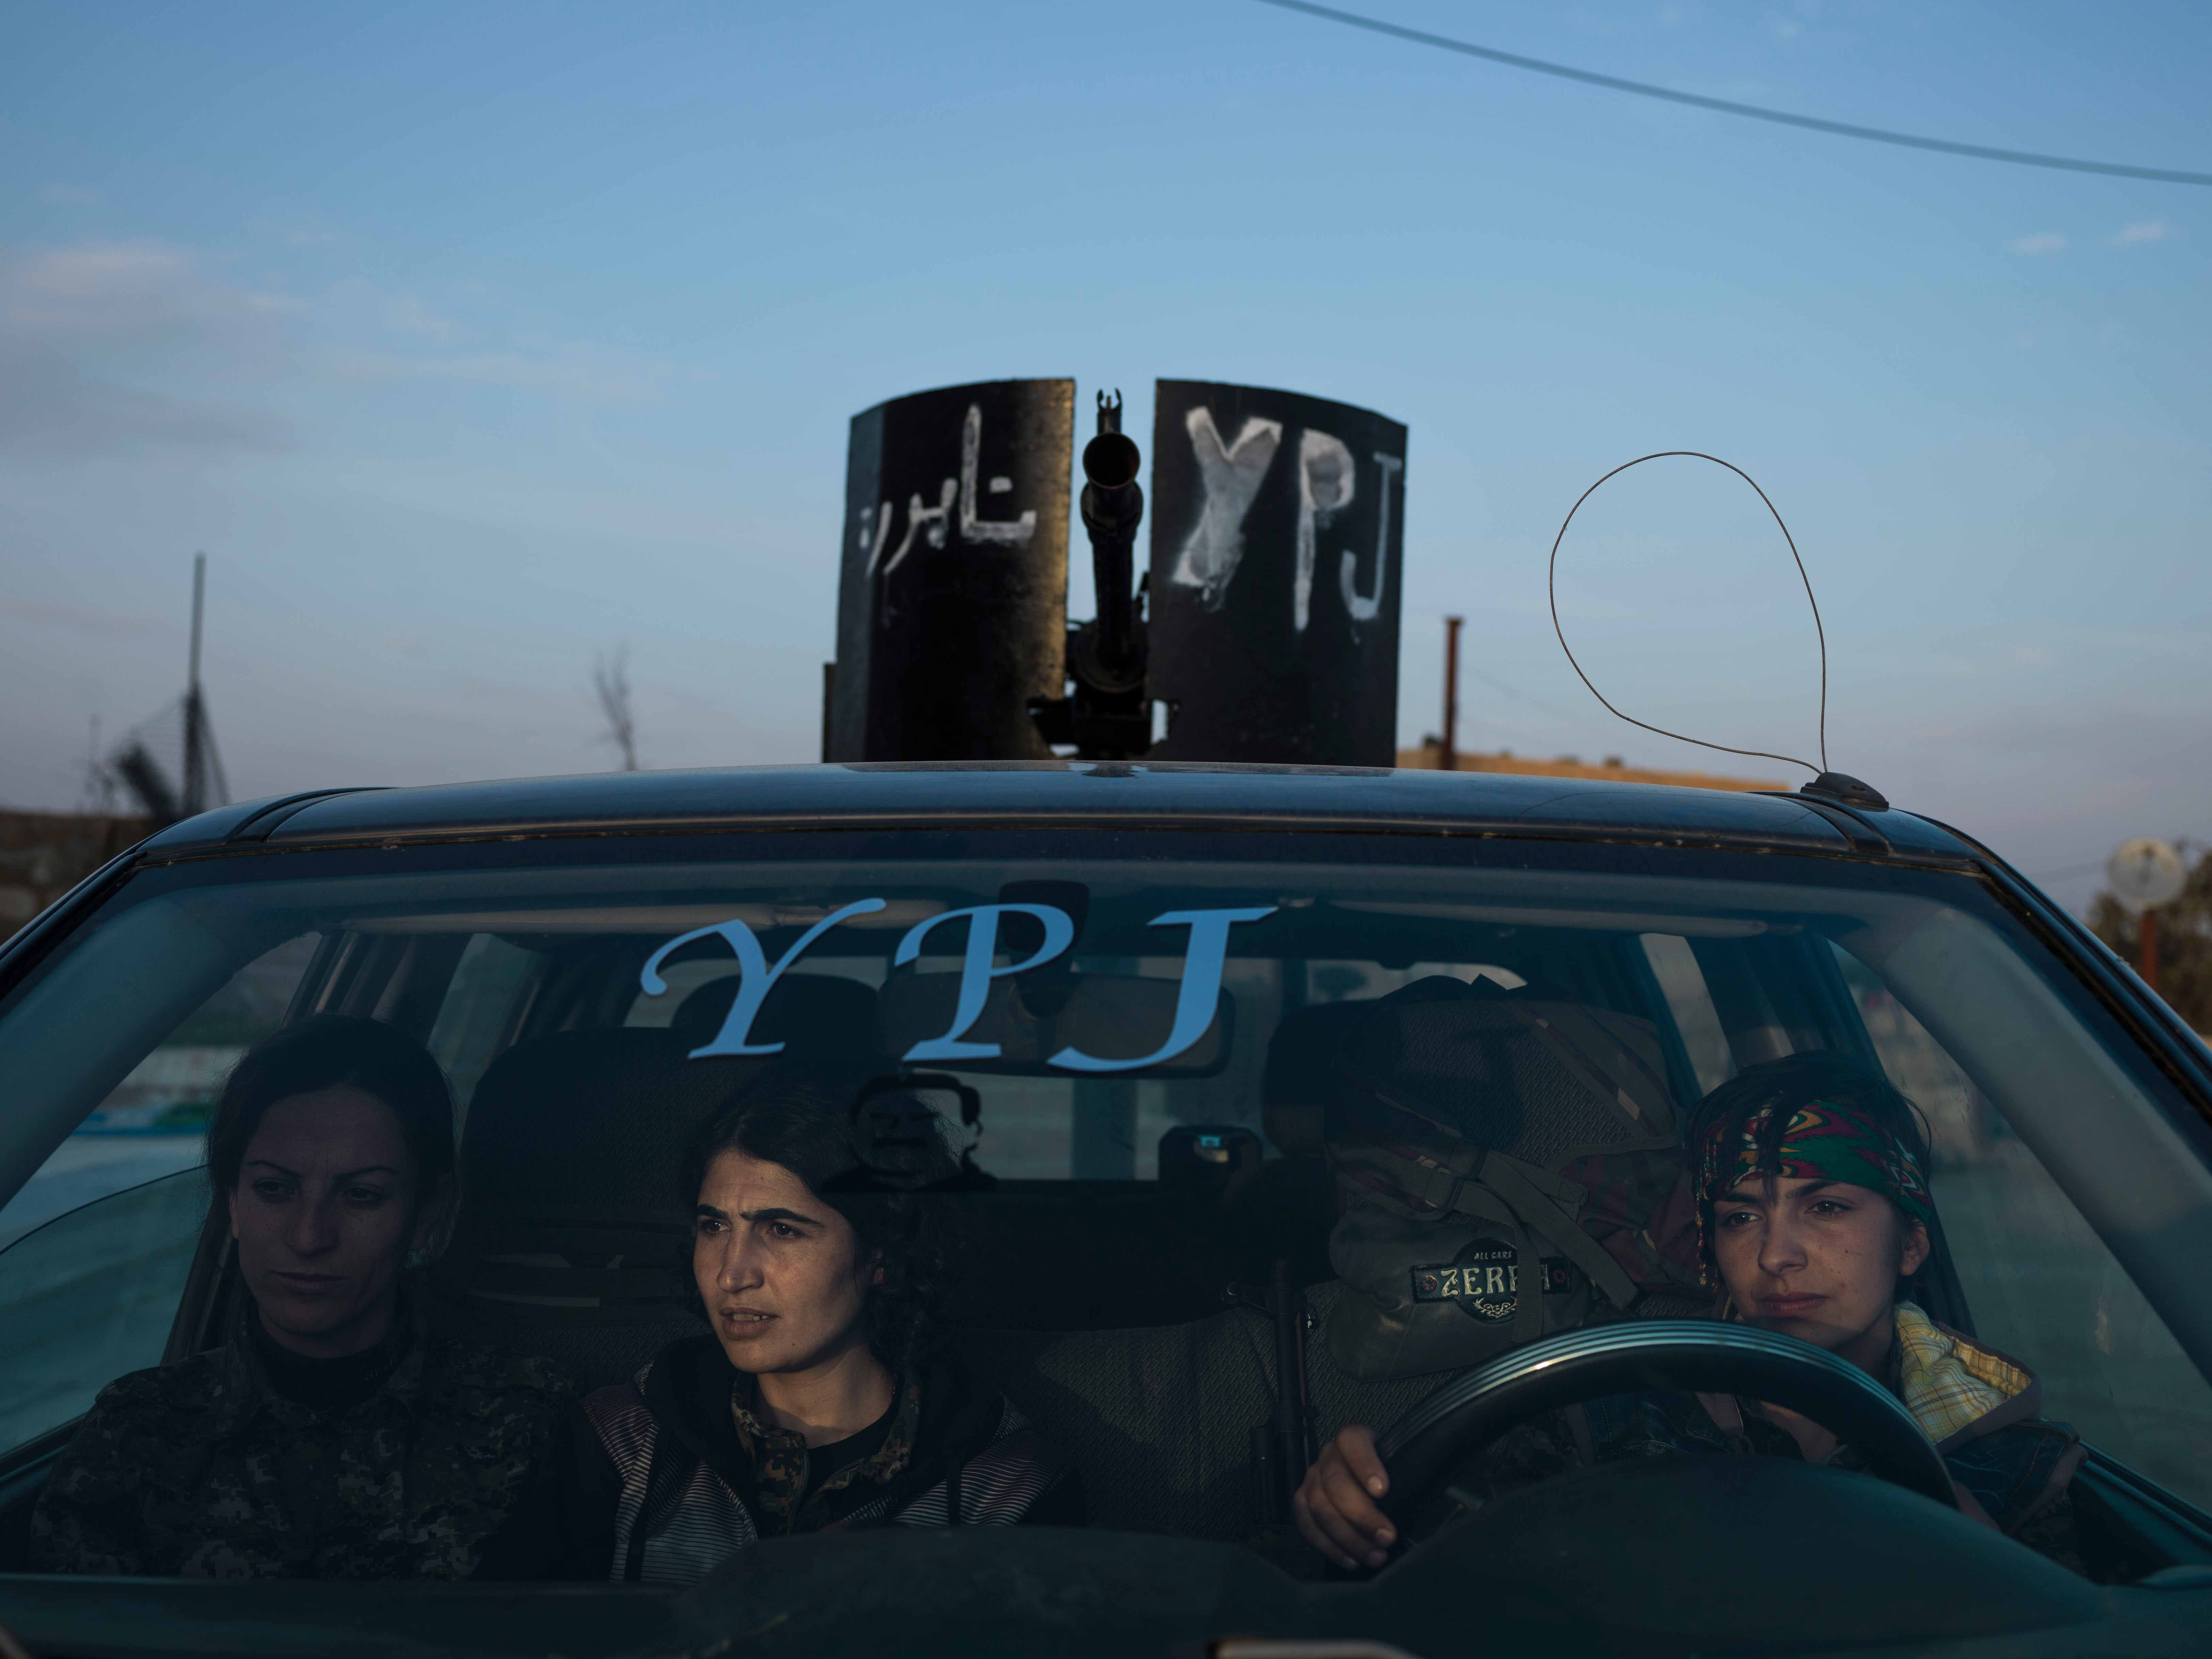 YPJ members sitting in an armed vehicle in Serikani. © Newsha Tavakolian / Magnum Photos